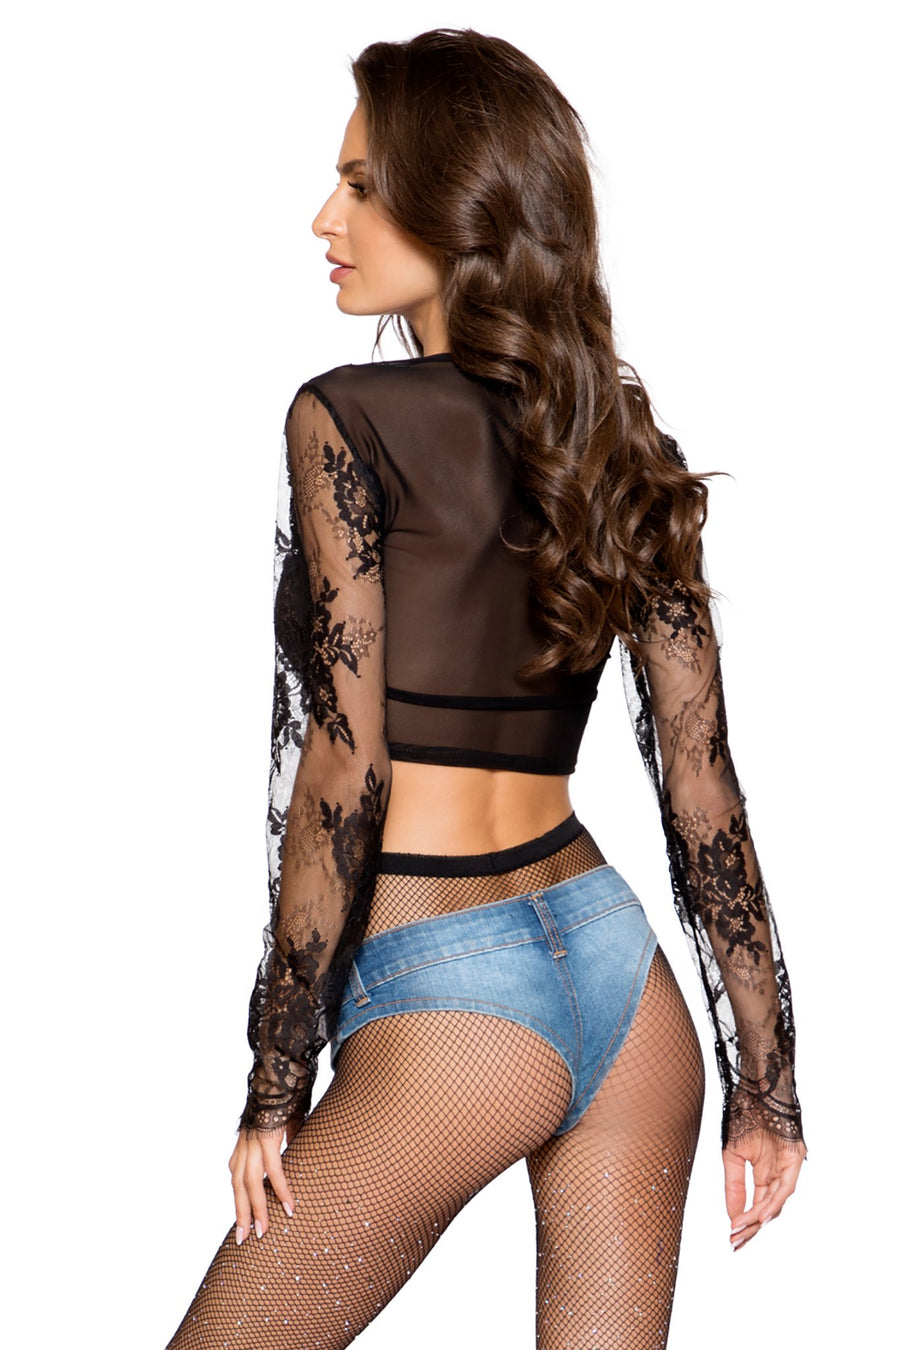 Long Sleeved Eyelash Lace Crop Top - Intimates, Roma - YourLamode